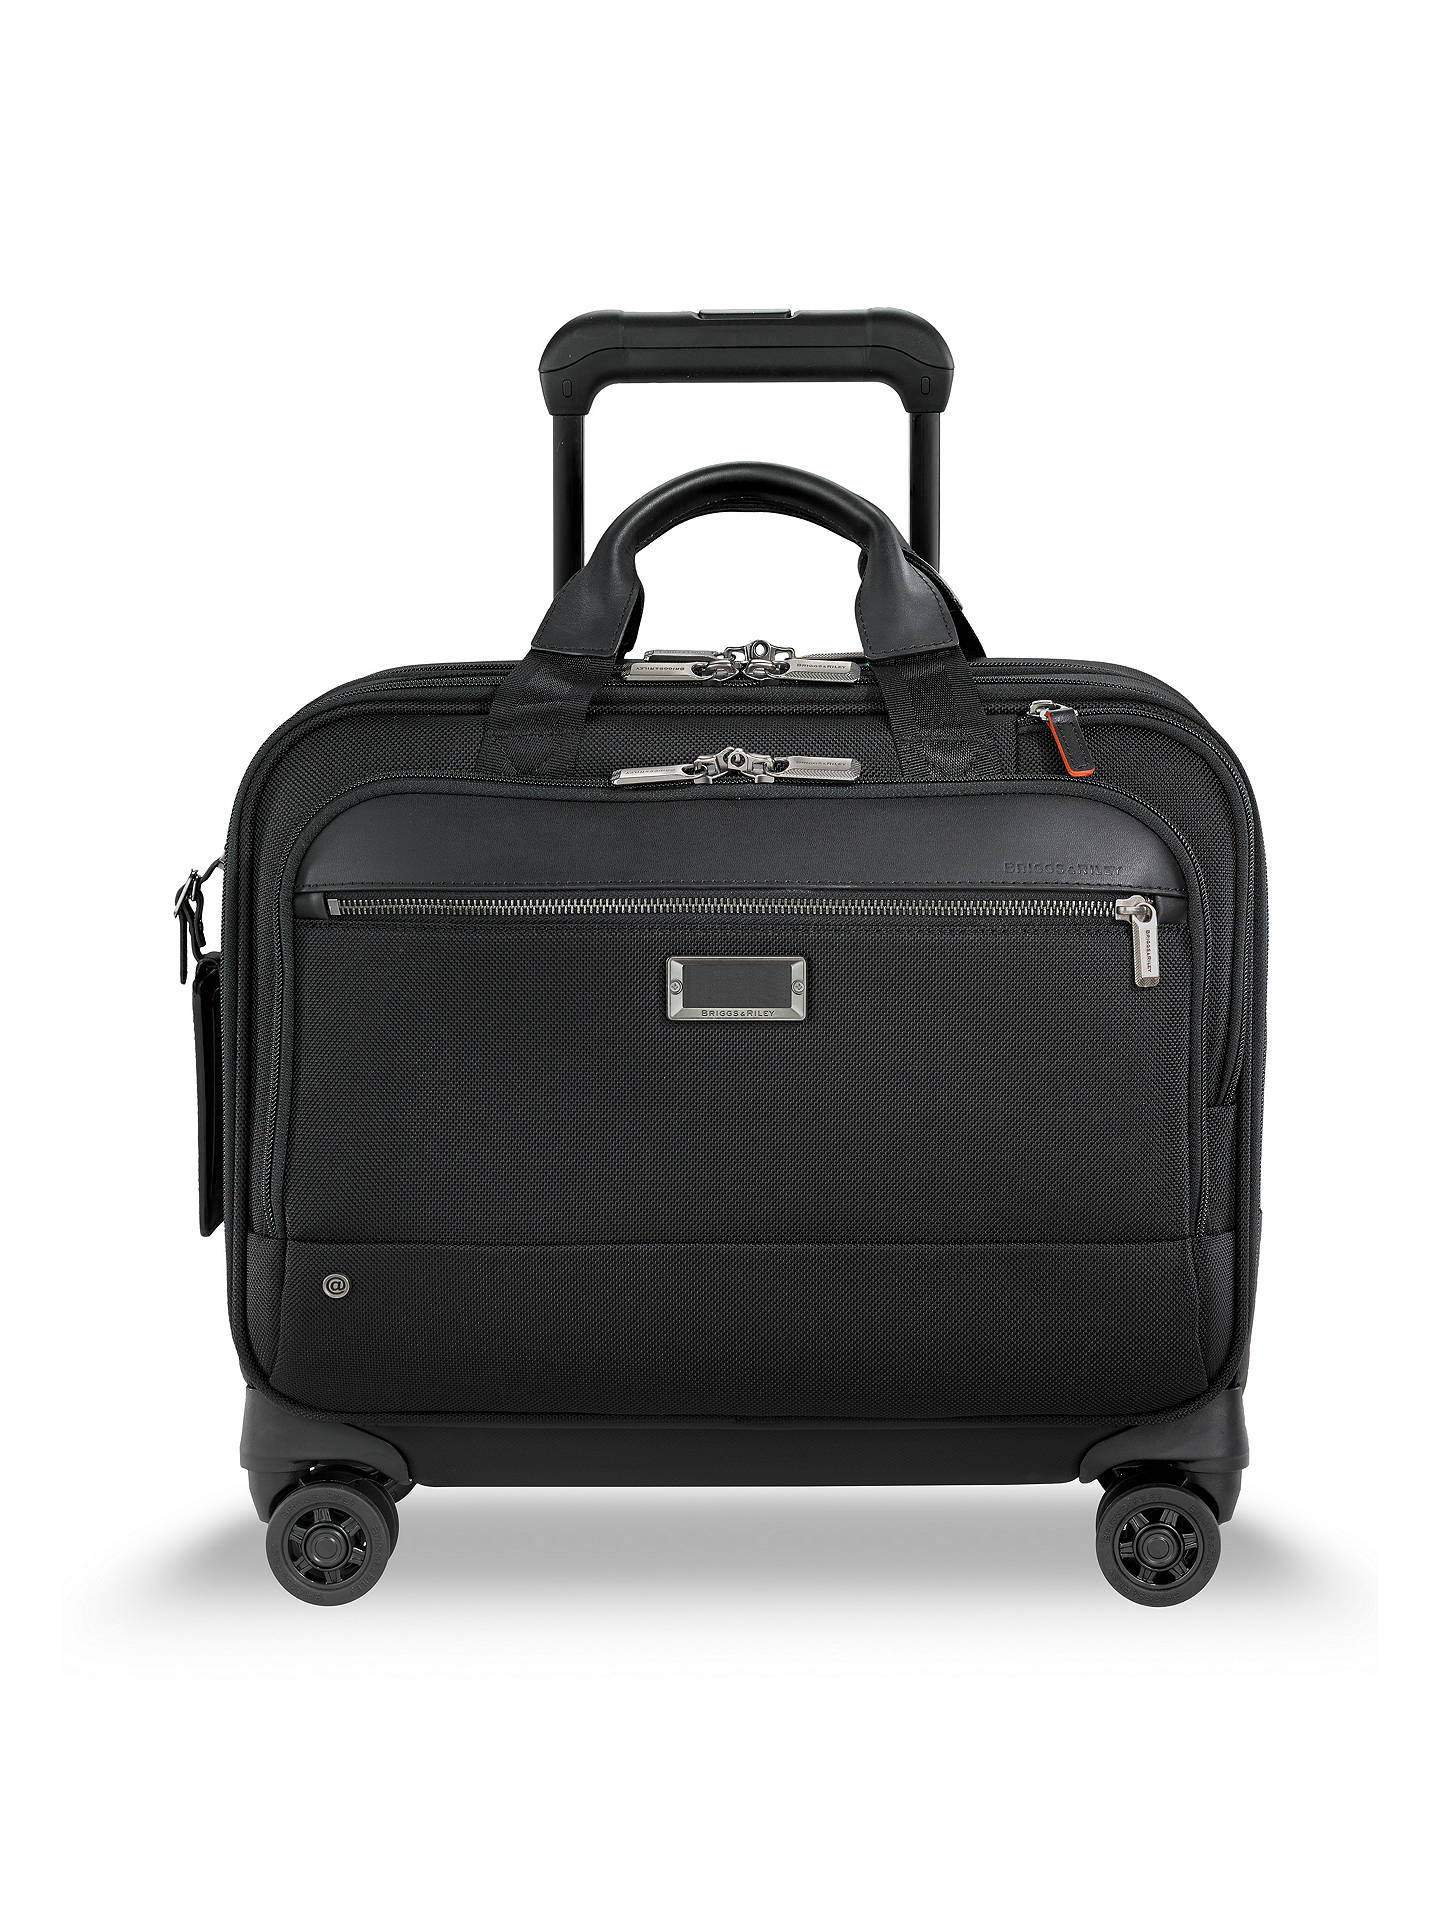 BuyBriggs & Riley AtWork Medium 4-Wheel Brief, Black Online at johnlewis.com